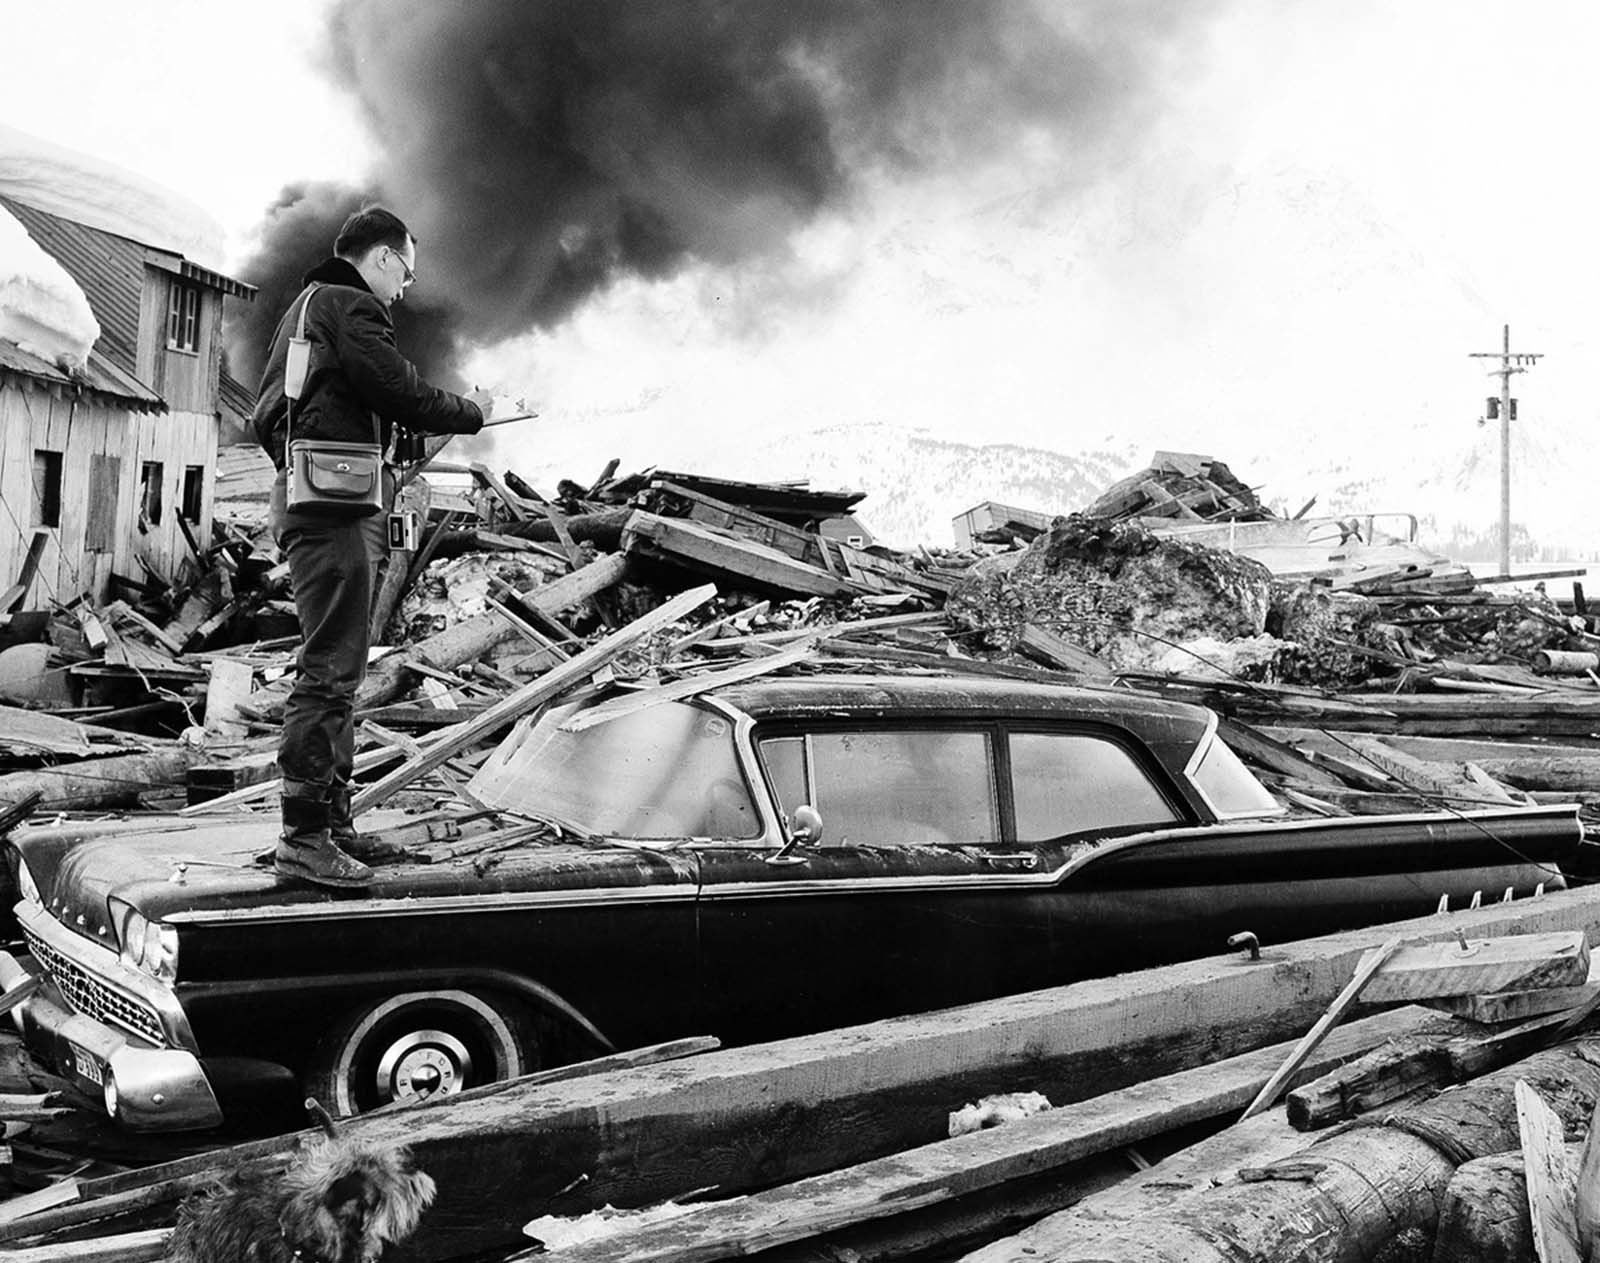 A photographer looks over wreckage as smoke rises in the background from burning oil storage tanks in Valdez, Alaska, on March 29, 1964, two days after the earthquake struck.